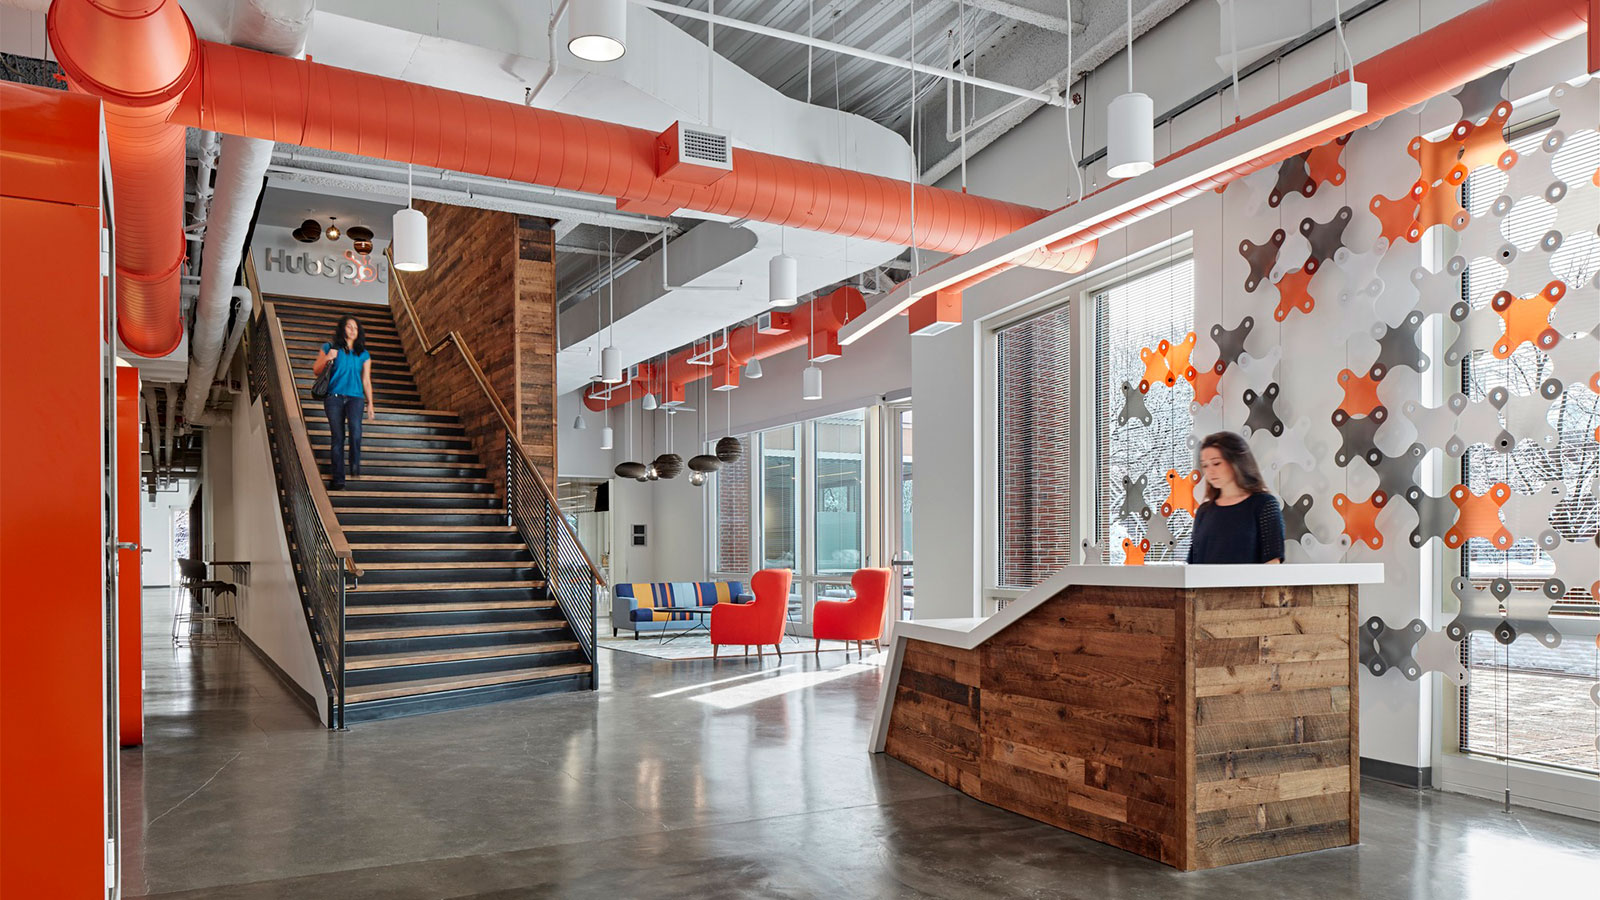 The Hubspot campus in Cambridge MA